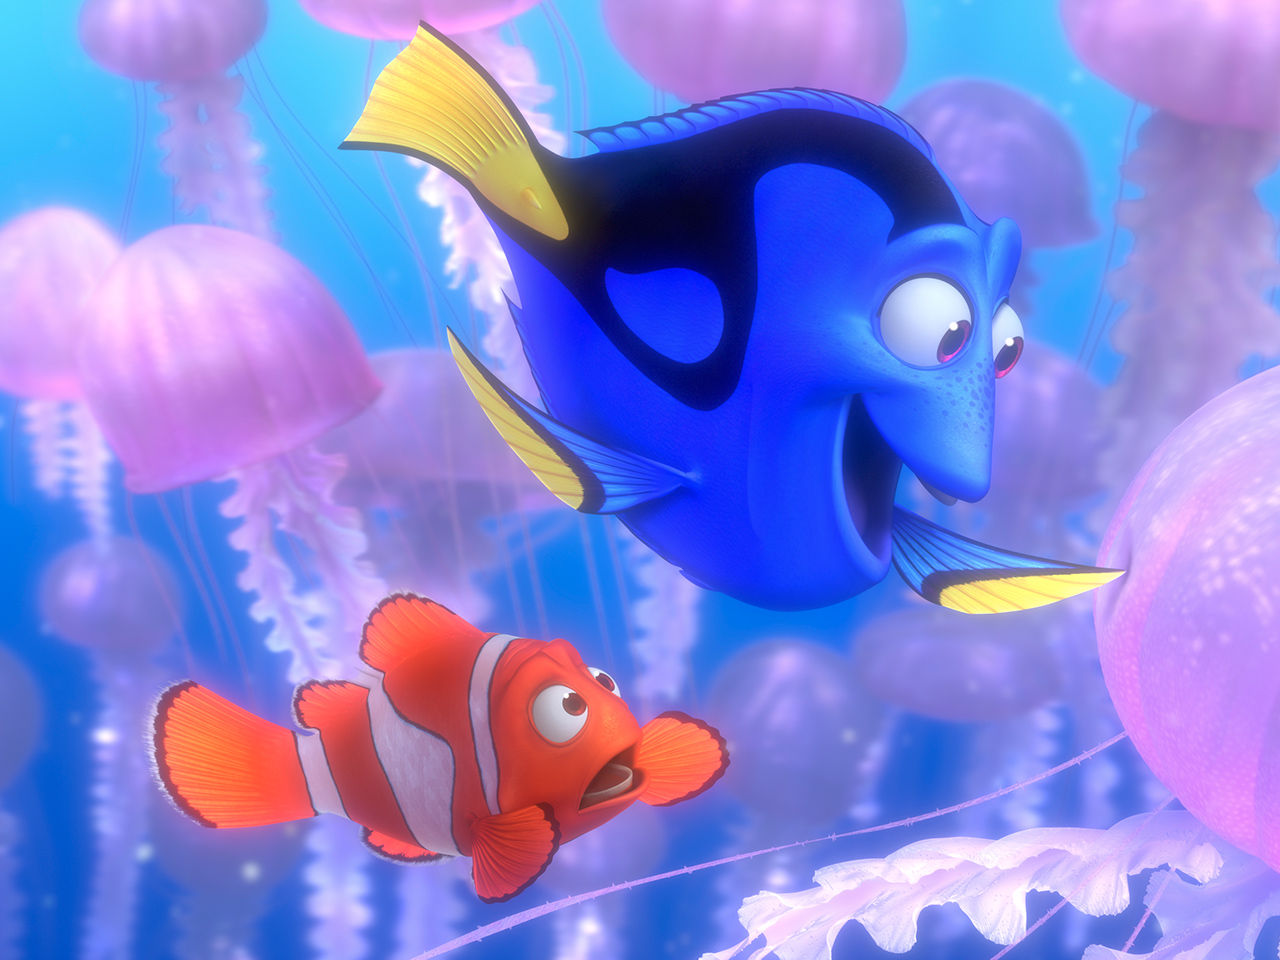 A still from the kids' animated movie Finding Nemo